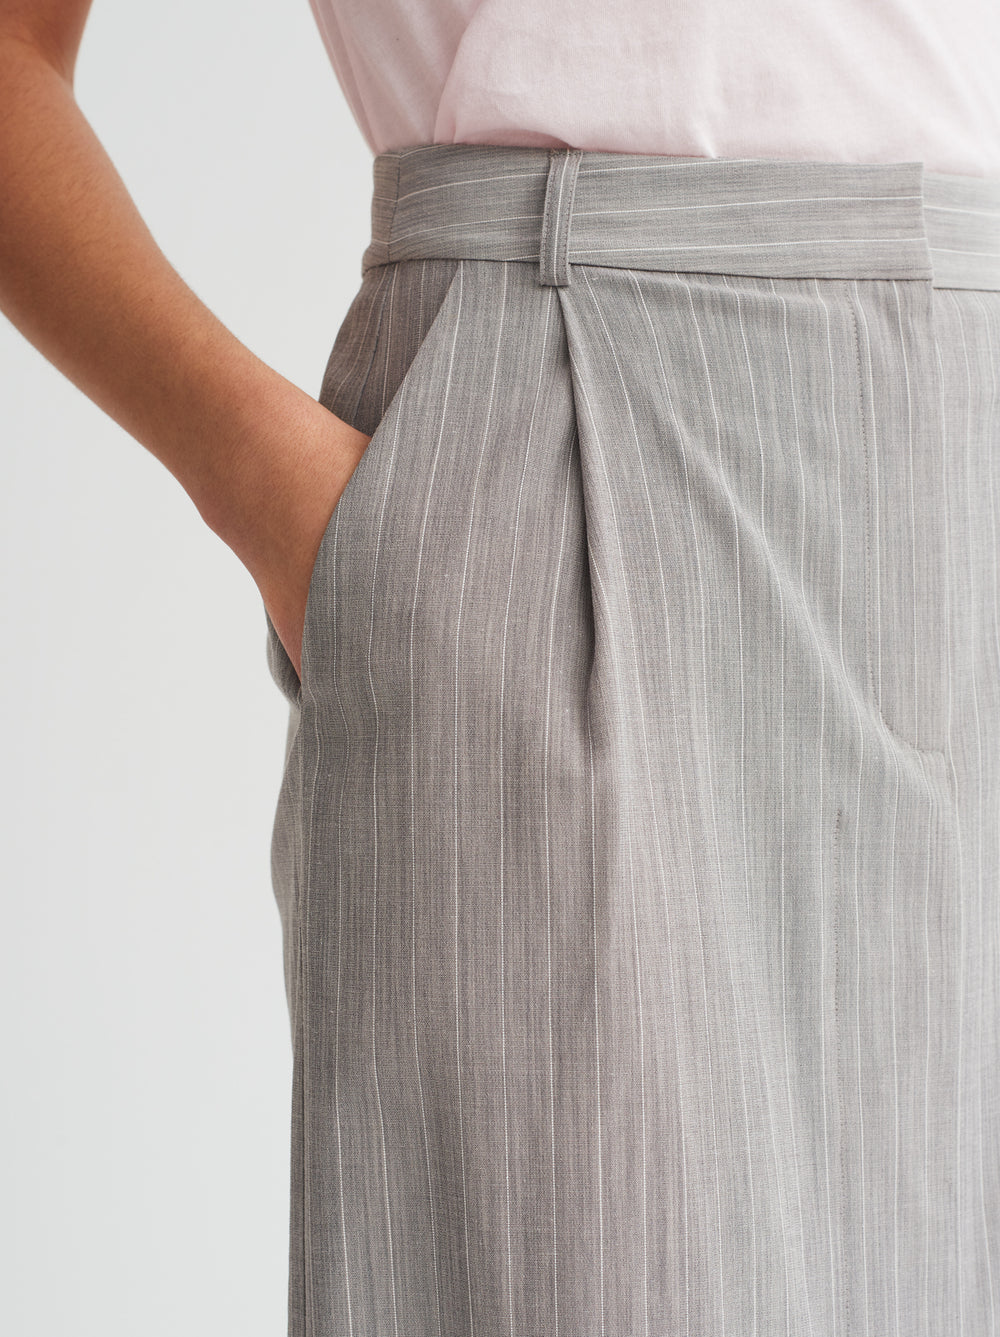 Ellen Grey Pinstripe Pencil Skirt by KITRI Studio